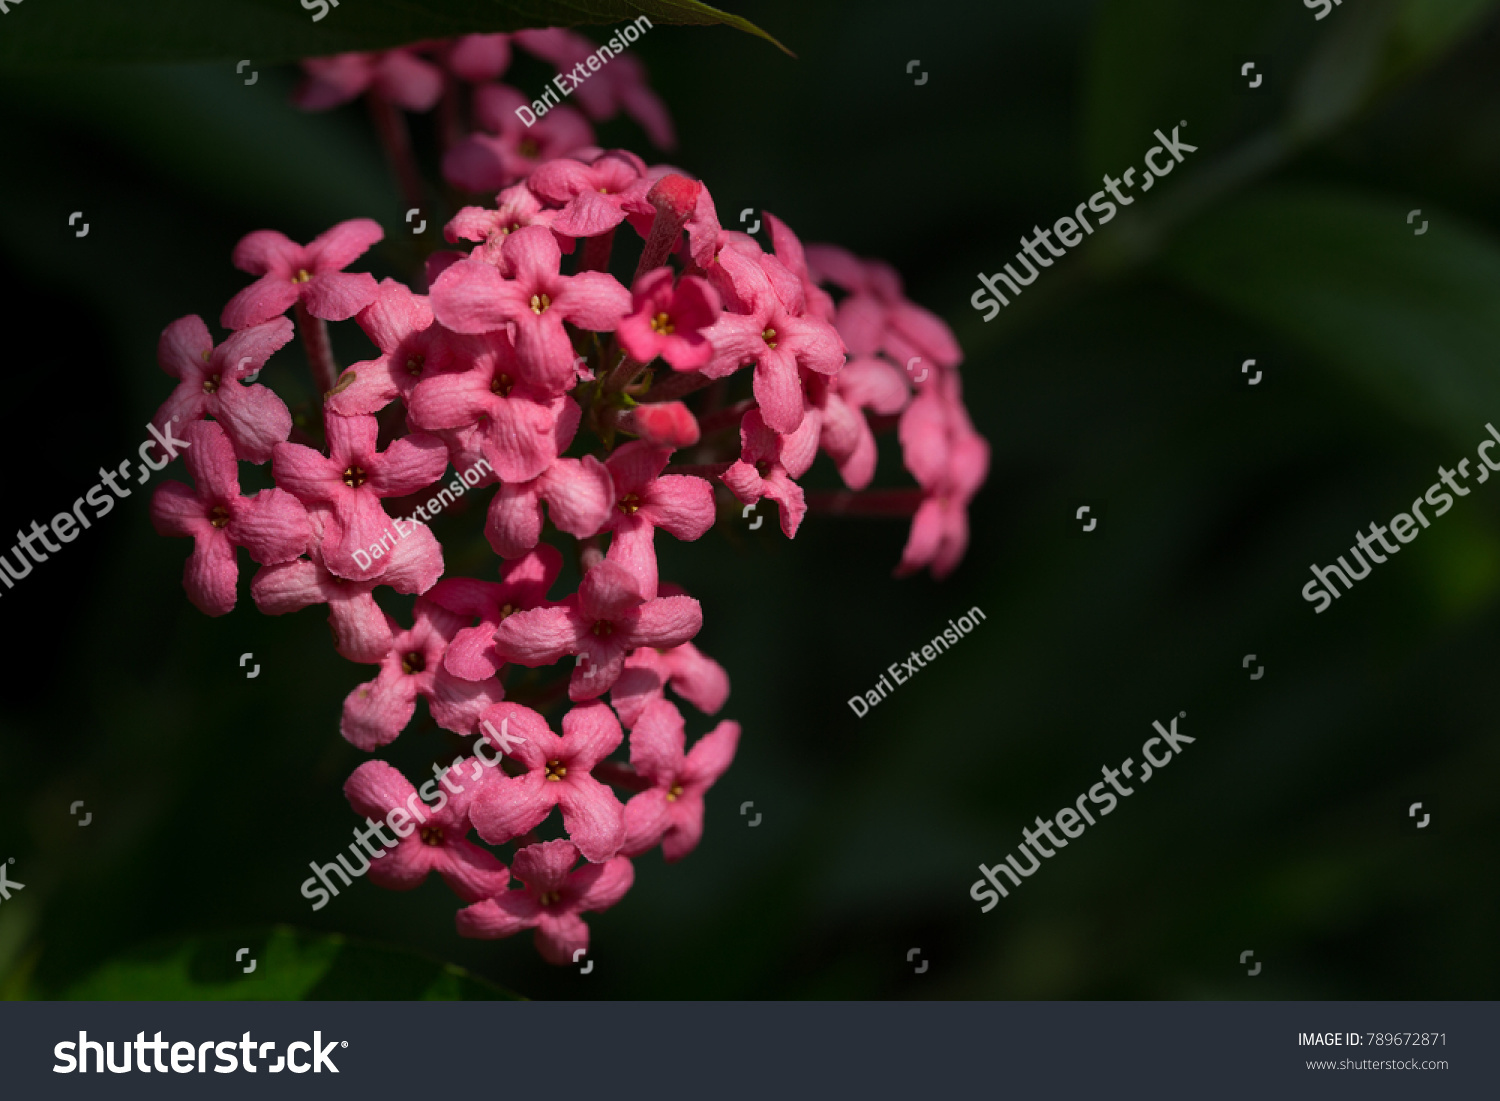 Pink Flowers Black Background Stock Photo Edit Now 789672871